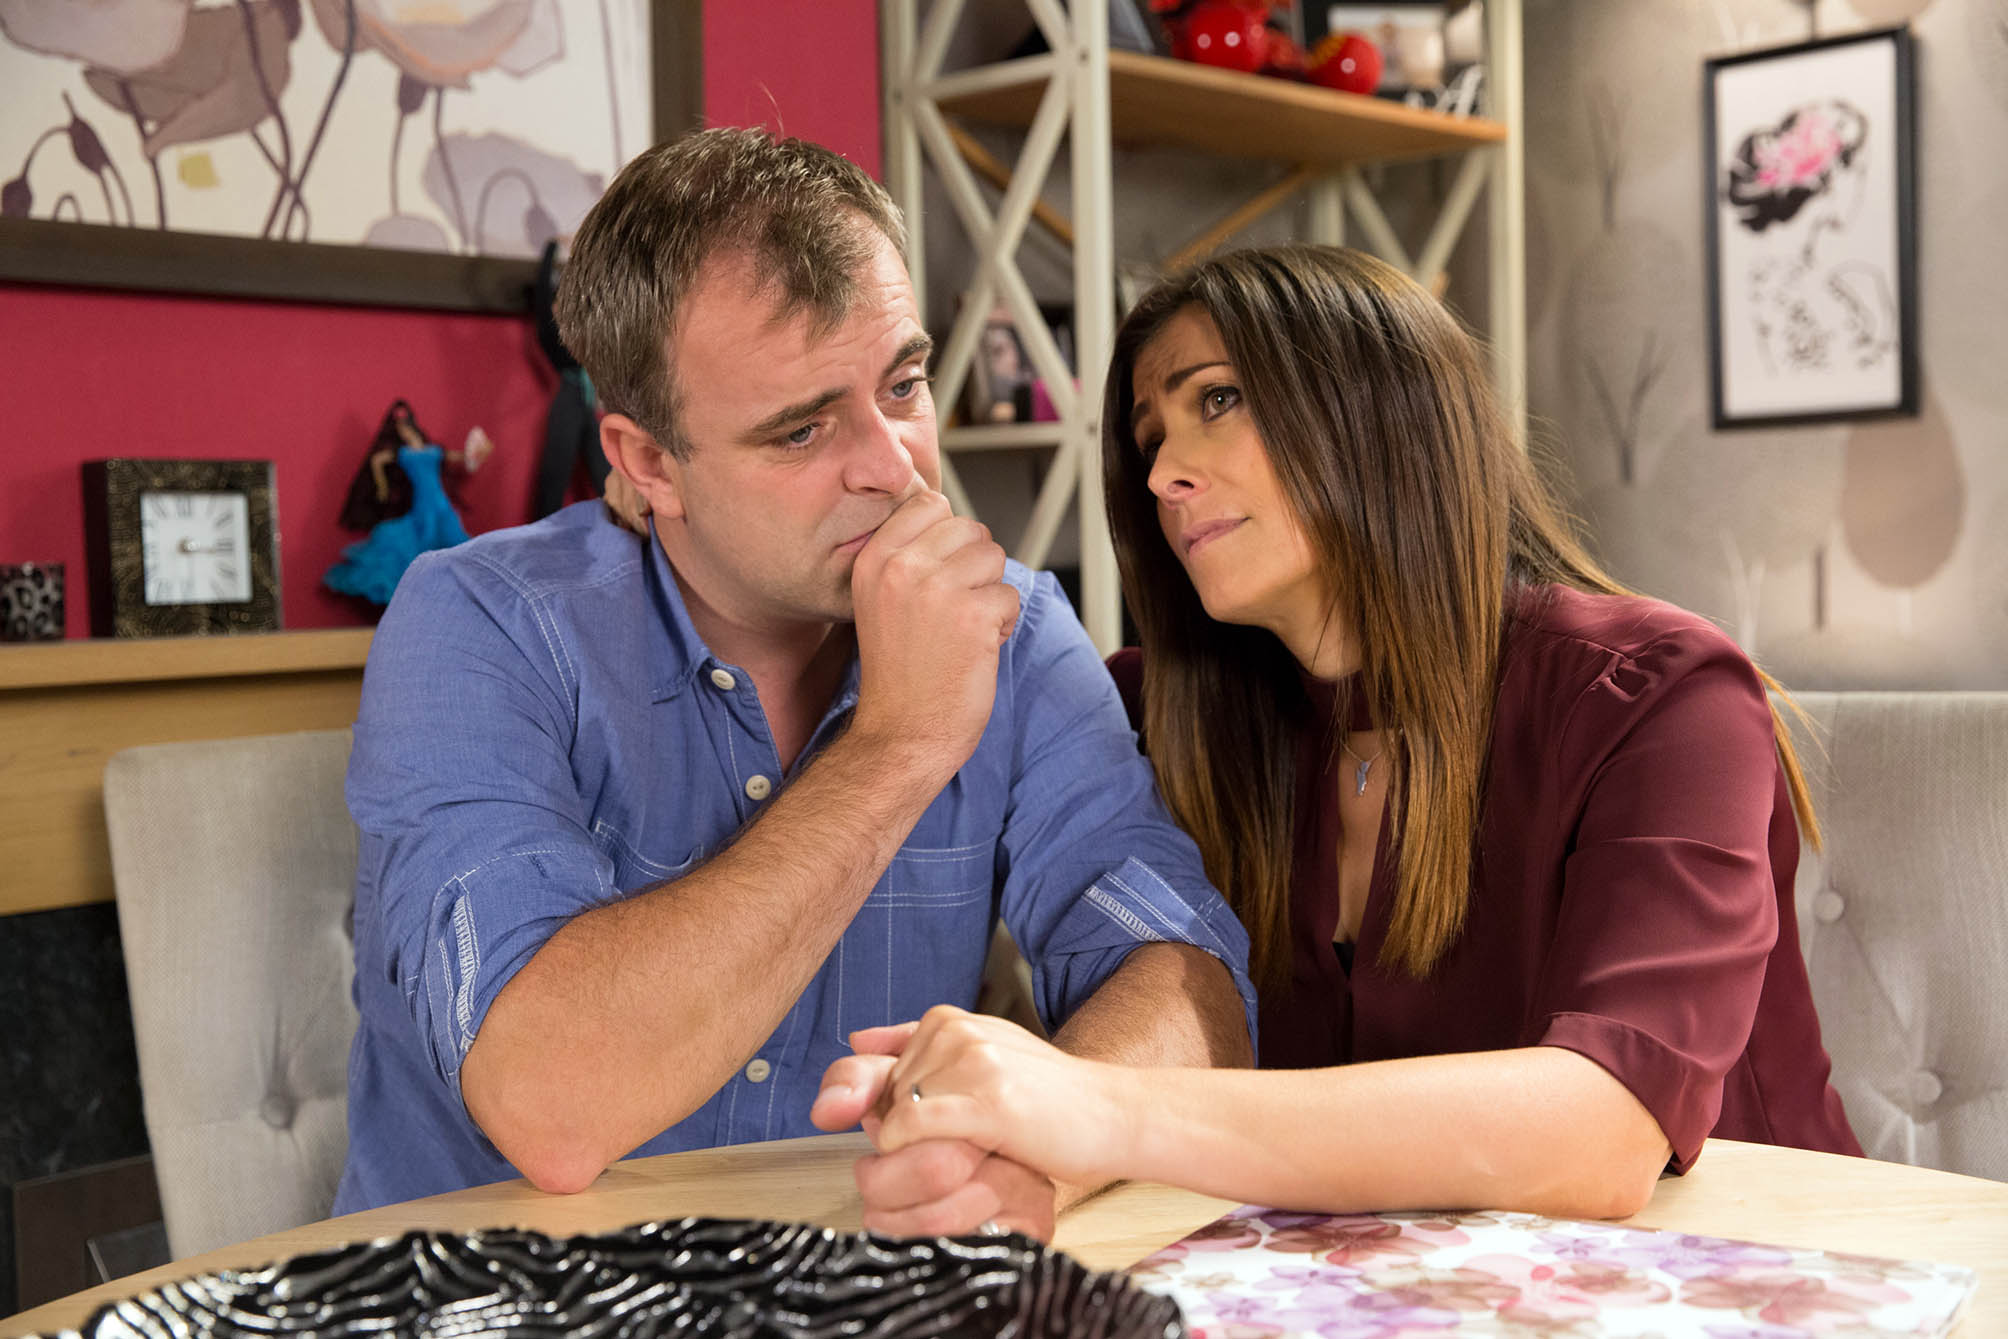 FROM ITV STRICT EMBARGO - NO USE BEFORE TUESDAY 4 OCTOBER 2016 Coronation Street - Ep 9009 Monday 10th October 2016 - 1st Ep Michelle Connor in a manner which alters the visual appearance of the person photographed deemed detrimental or inappropriate by ITV plc Picture Desk. This photograph must not be syndicated to any other company, publication or website, or permanently archived, without the express written permission of ITV Plc Picture Desk. Full Terms and conditions are available on the website www.itvpictures.com